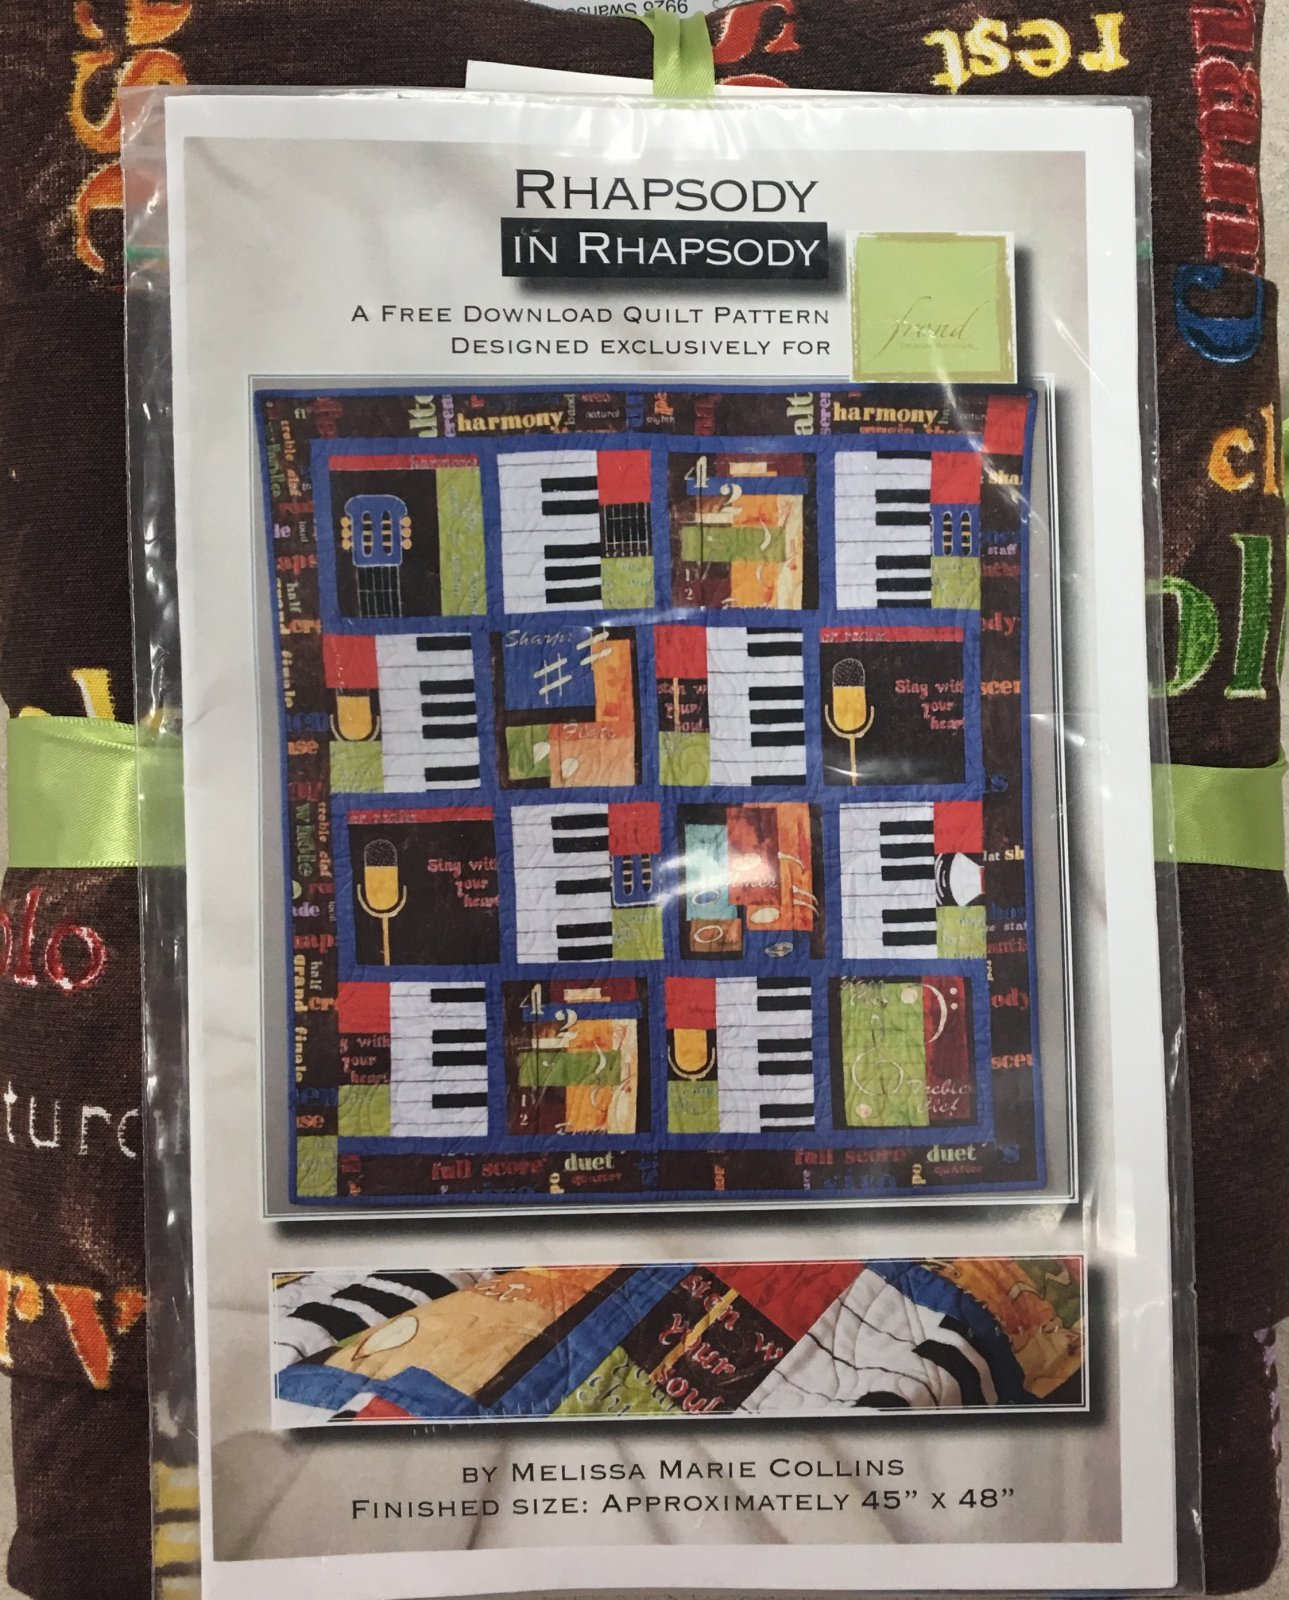 Rhapsody in Rhapsody Quilt Kit by Melissa Marie Collins for Frond Design Studios